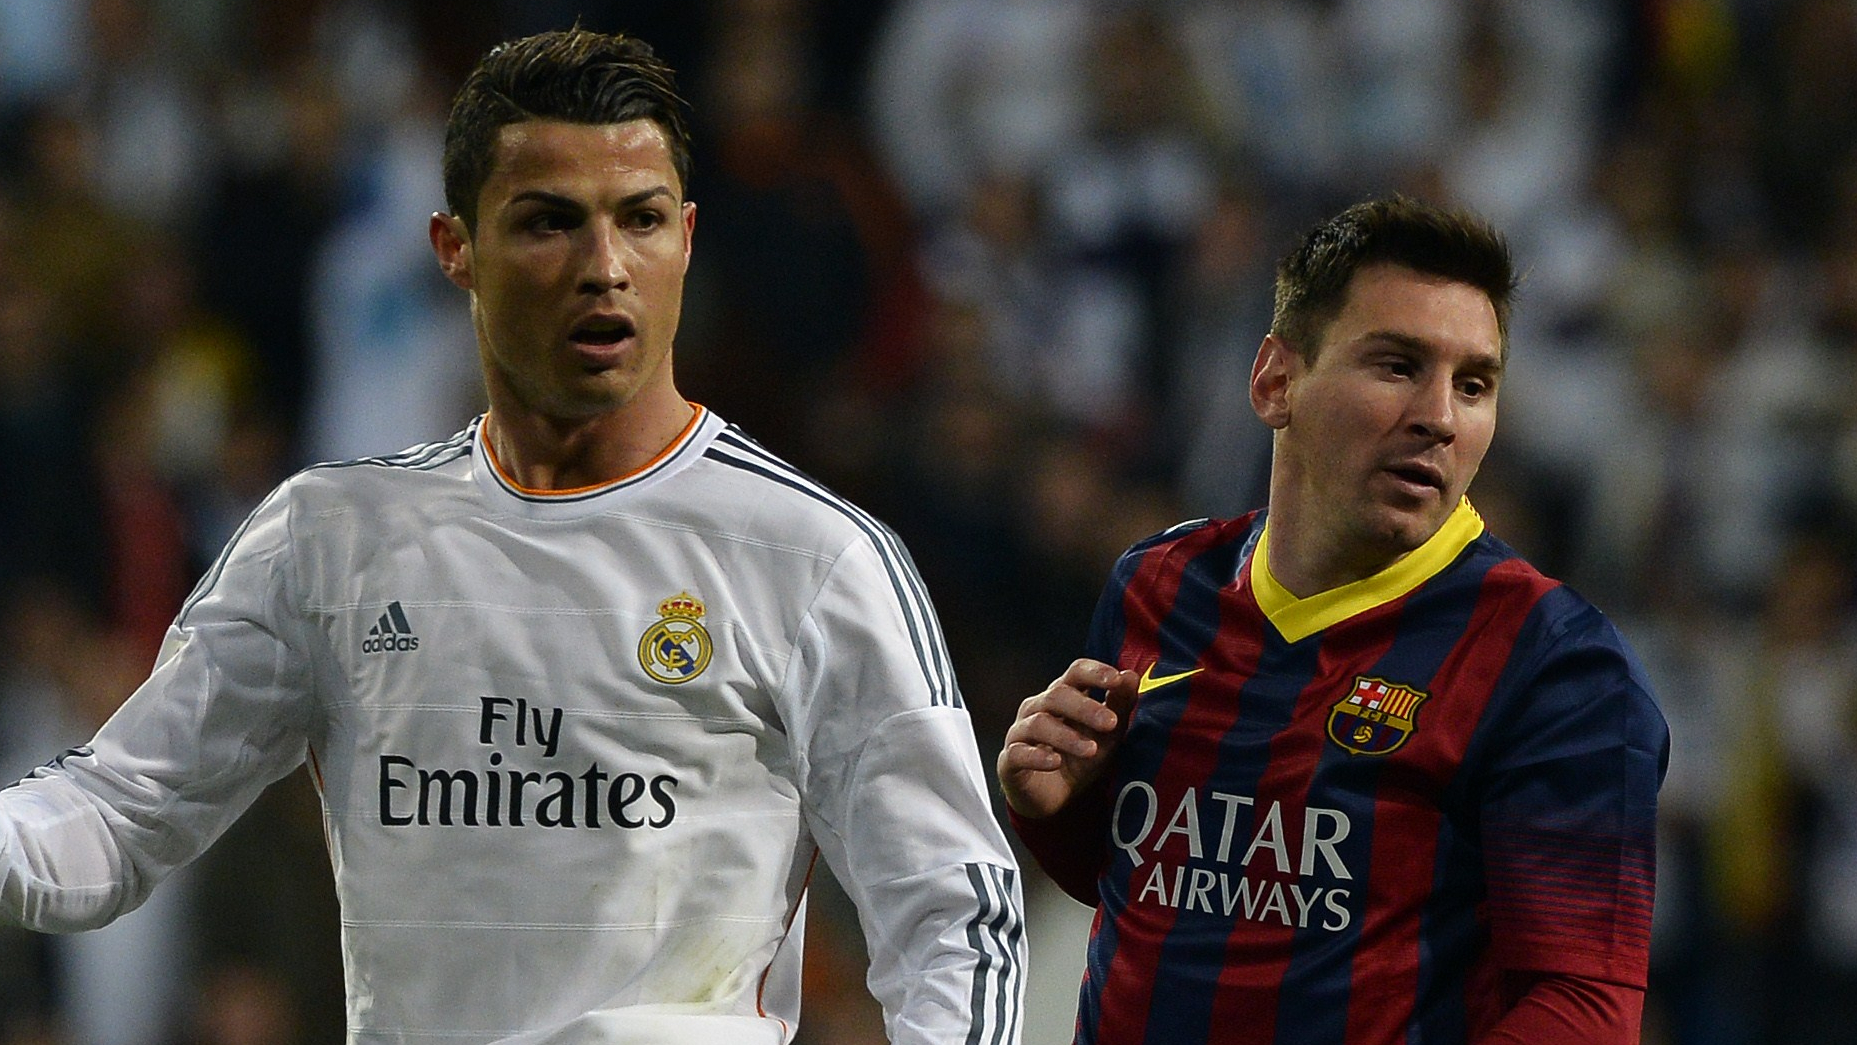 UEFA 'Rigged' Team Of The Year To Include Cristiano Ronaldo